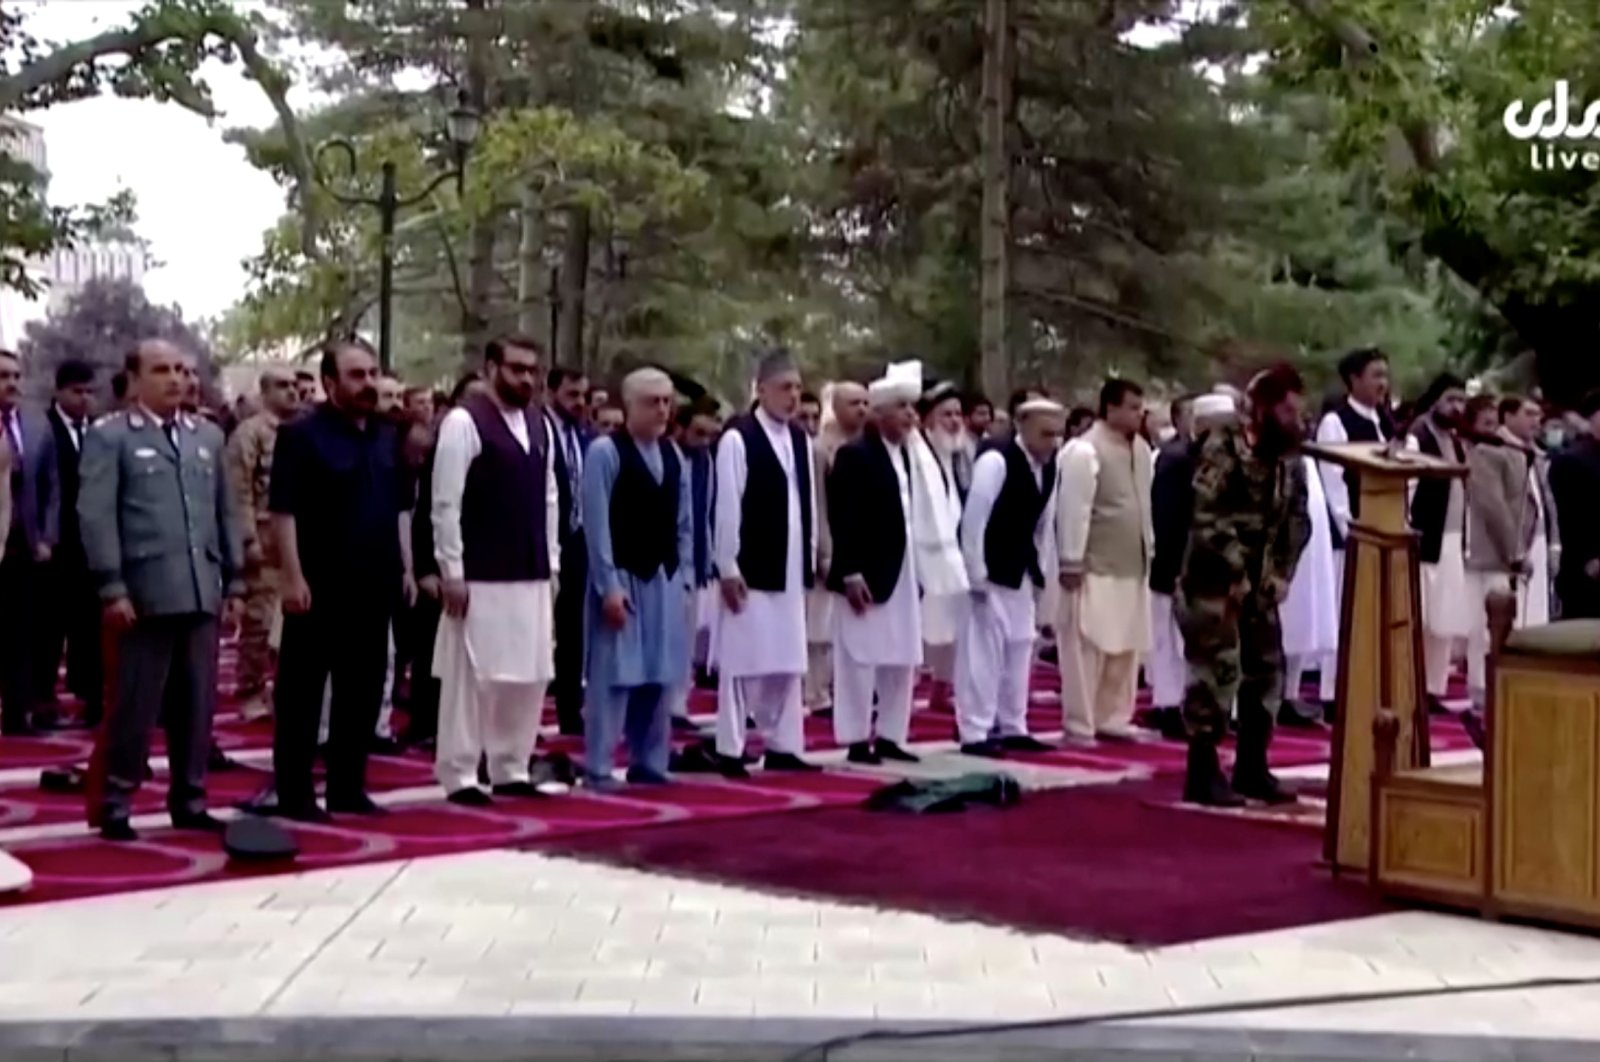 Afghanistan's President Ashraf Ghani (front row) attends Eid al-Adha prayers at the presidential palace, moments before the sounds of rocket explosions can be heard, in Kabul, Afghanistan, July 20, 2021, in this still image taken from TV footage. (Reuters Photo)